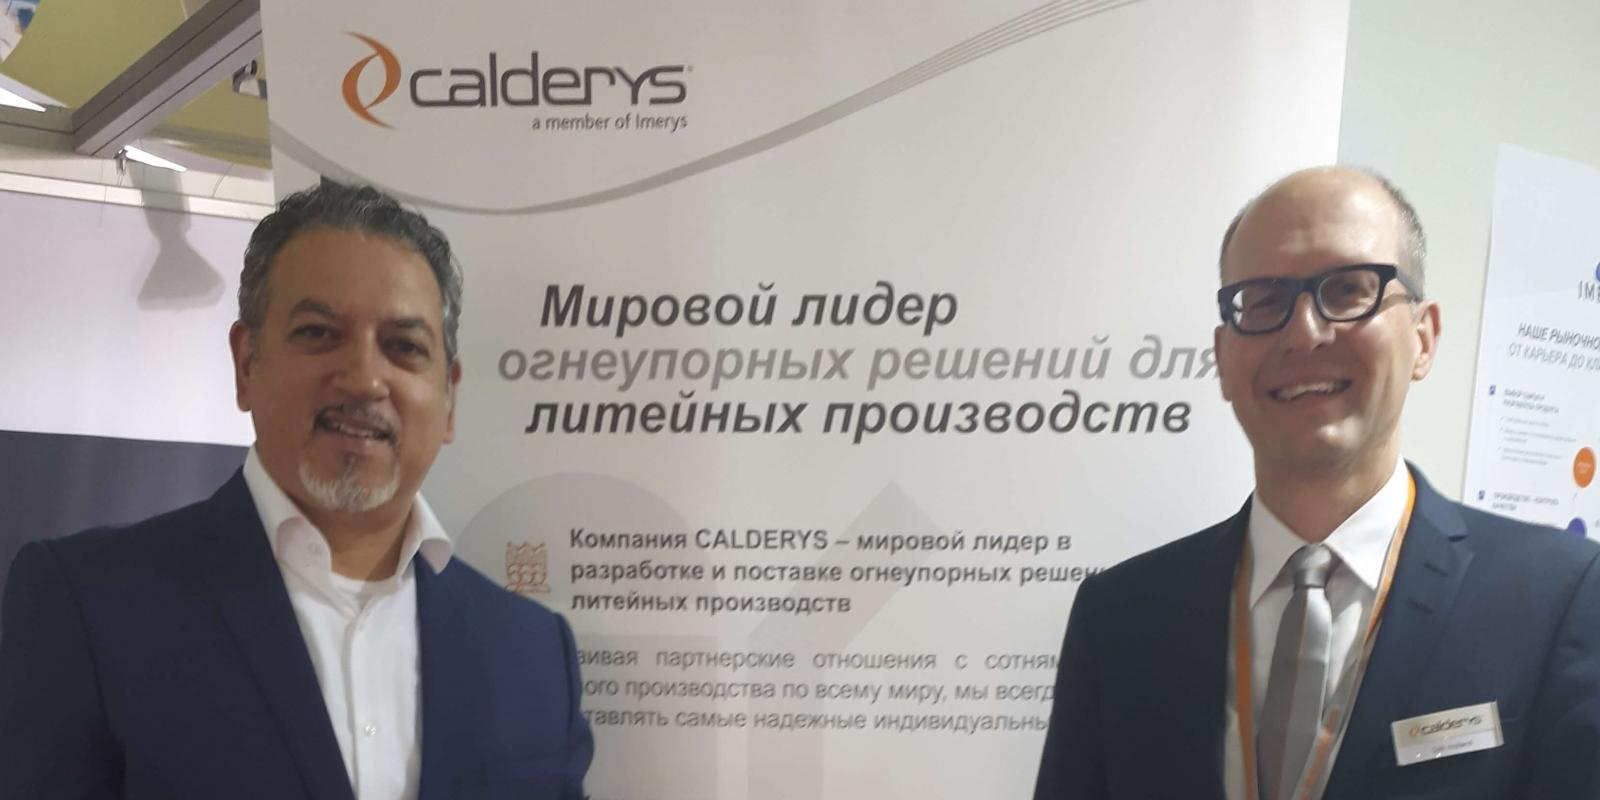 Calderys' foundry experts exchanged their expertise at Litmash 2019 - Russia